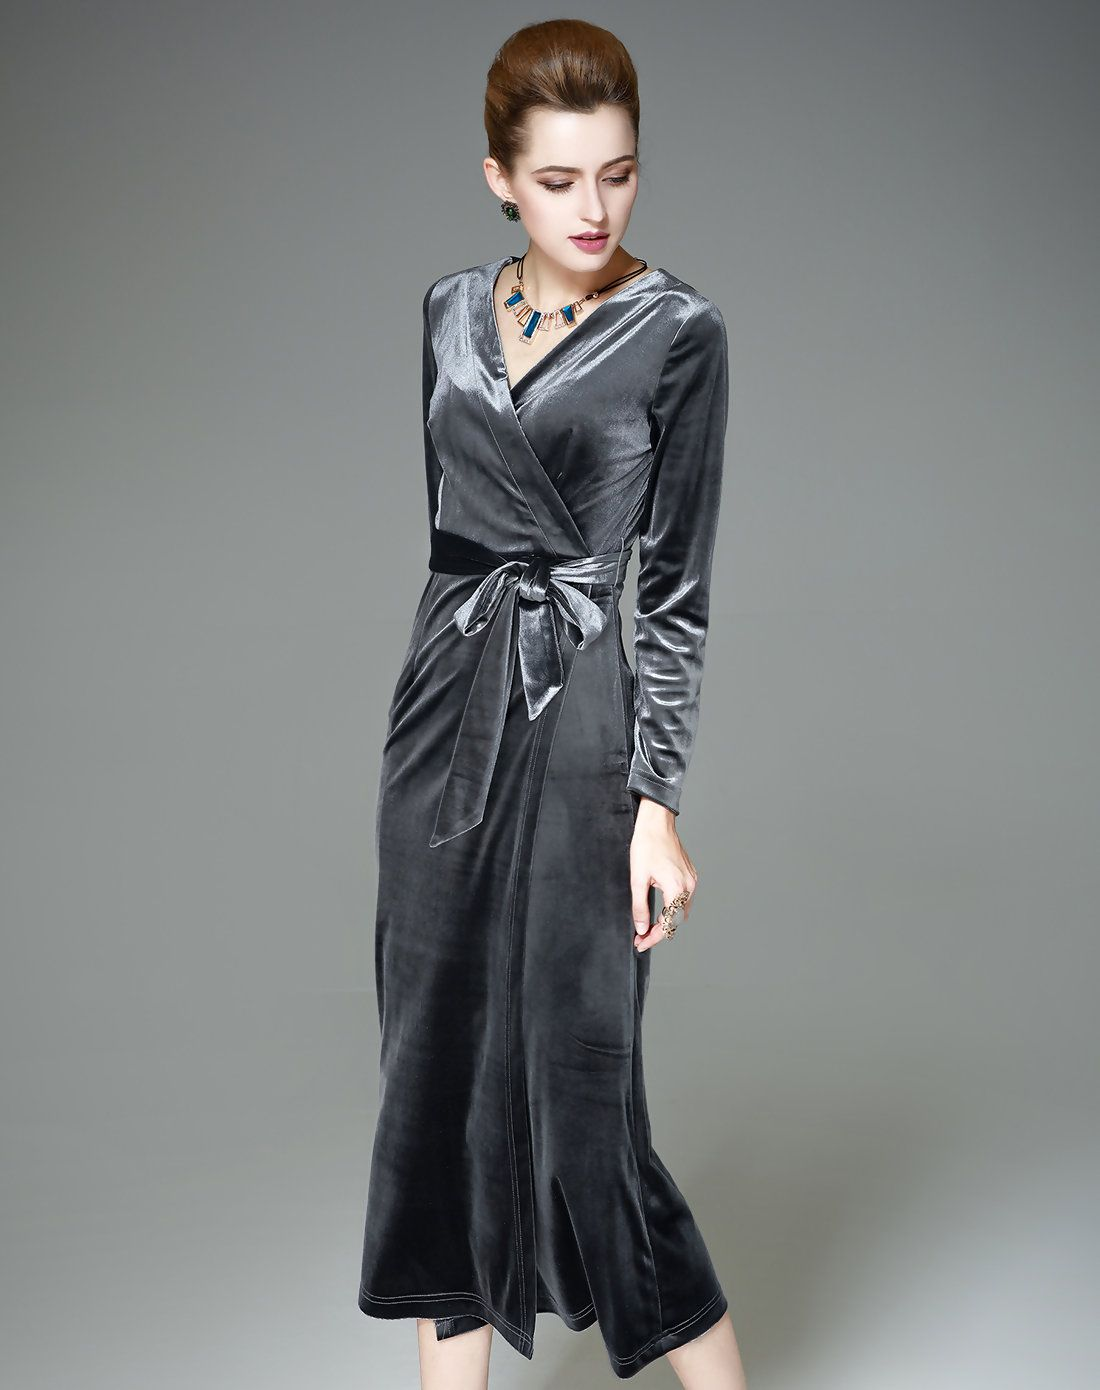 Adorewe qeexi velvet overlap long sleeve h line silver long dress